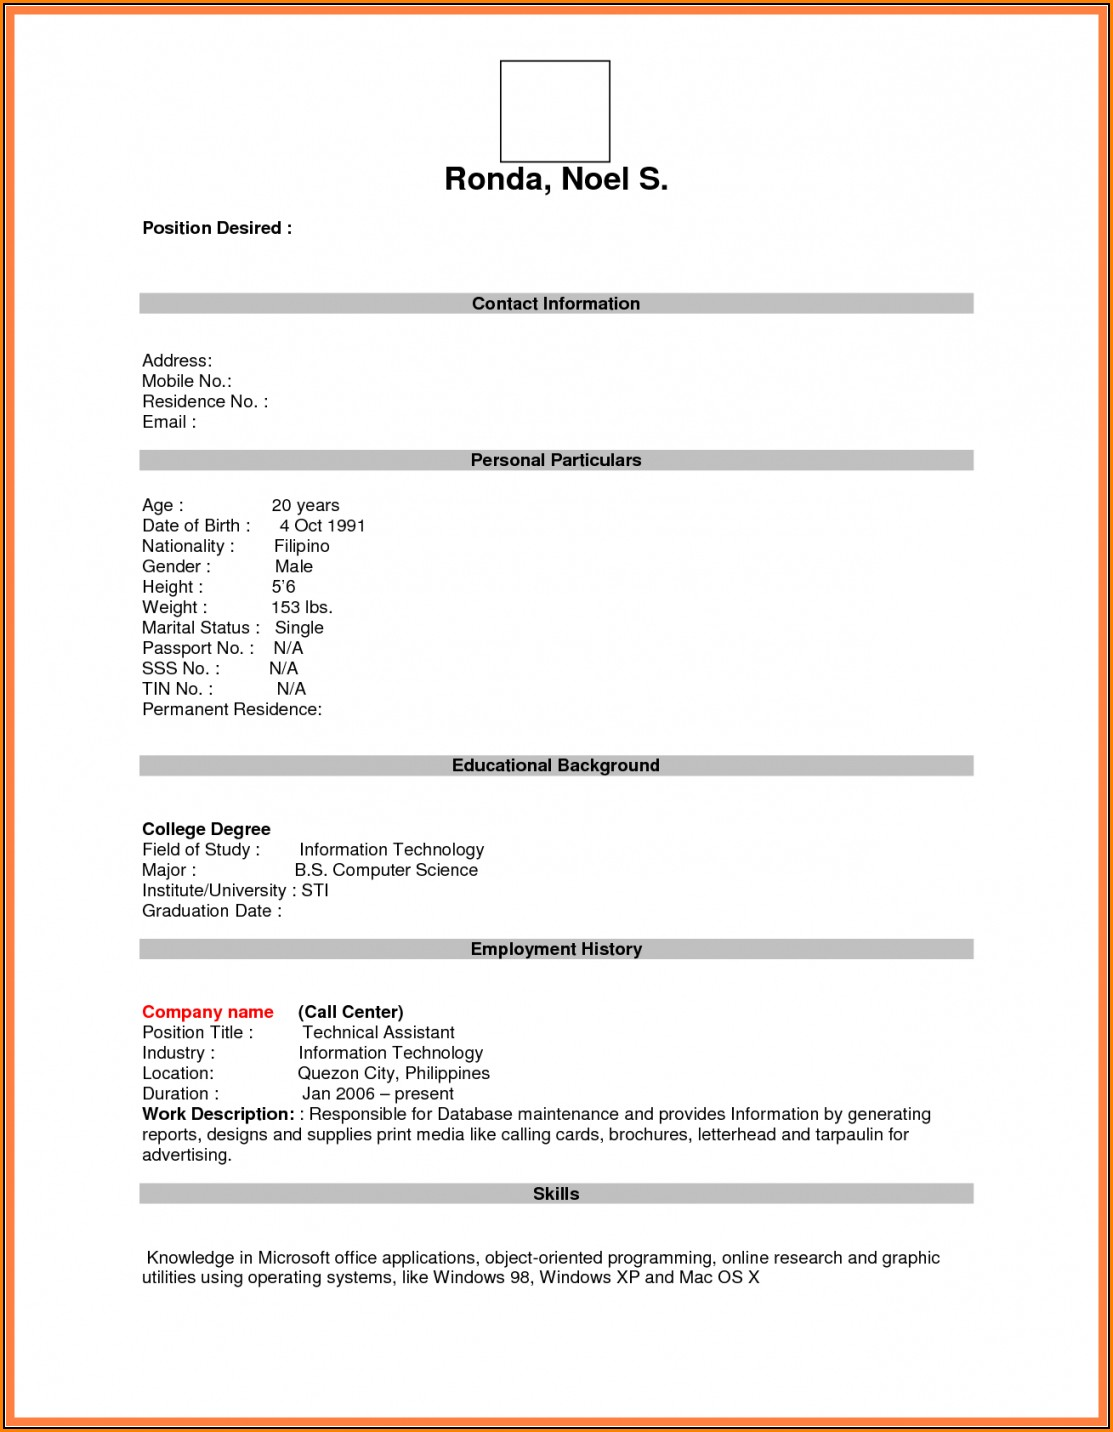 Blank Resume Form For Job Application Download